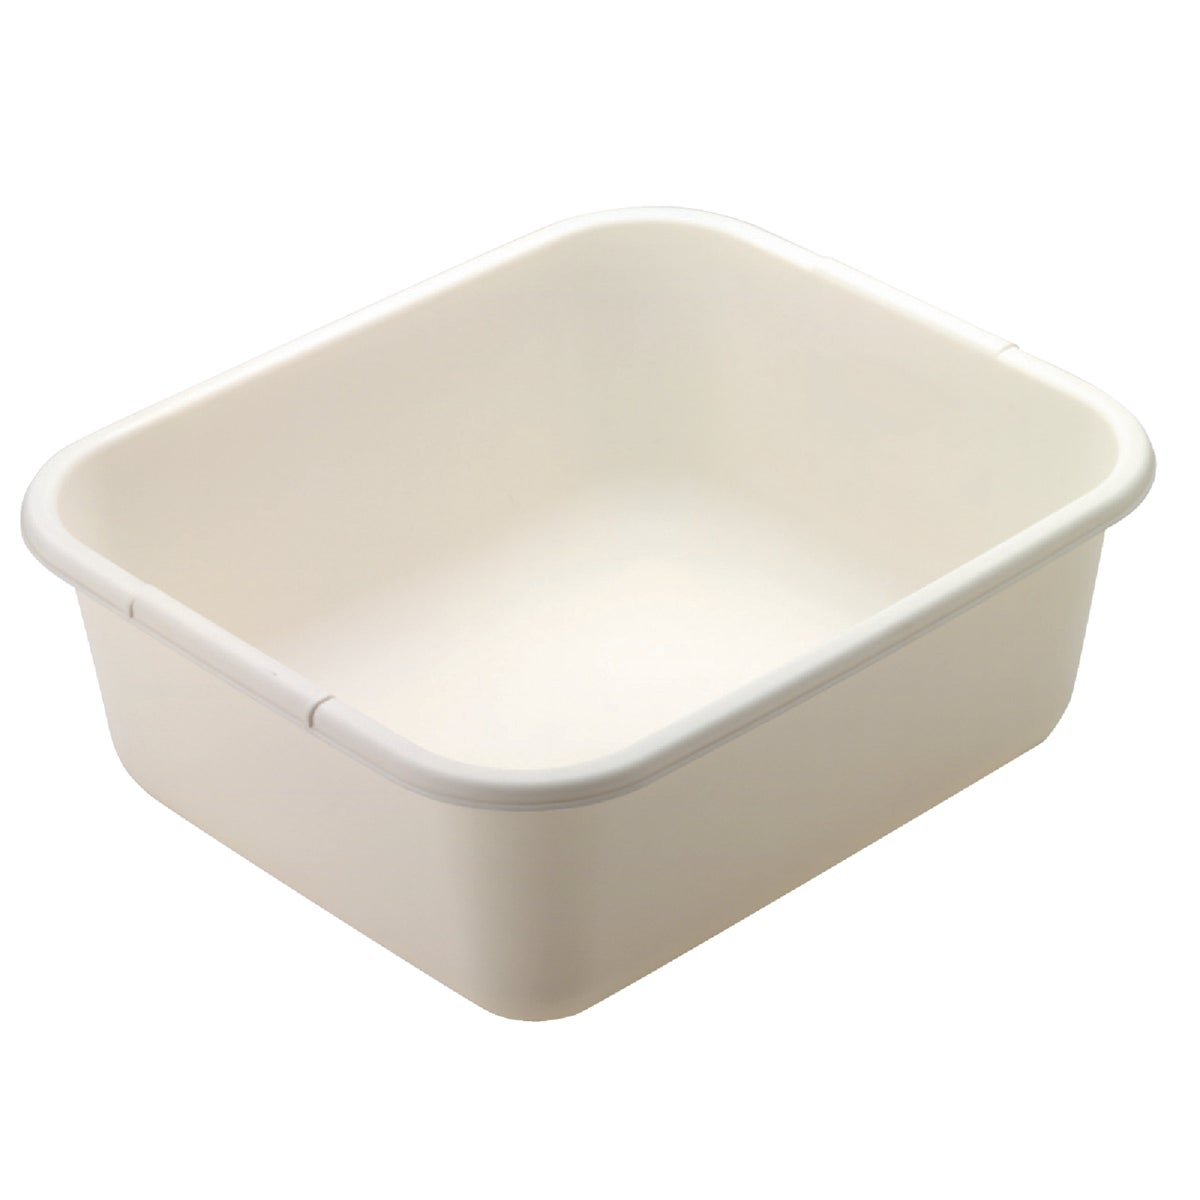 BISQUE DISHPAN - 2951-AR-BISQU by Rubbermaid Home